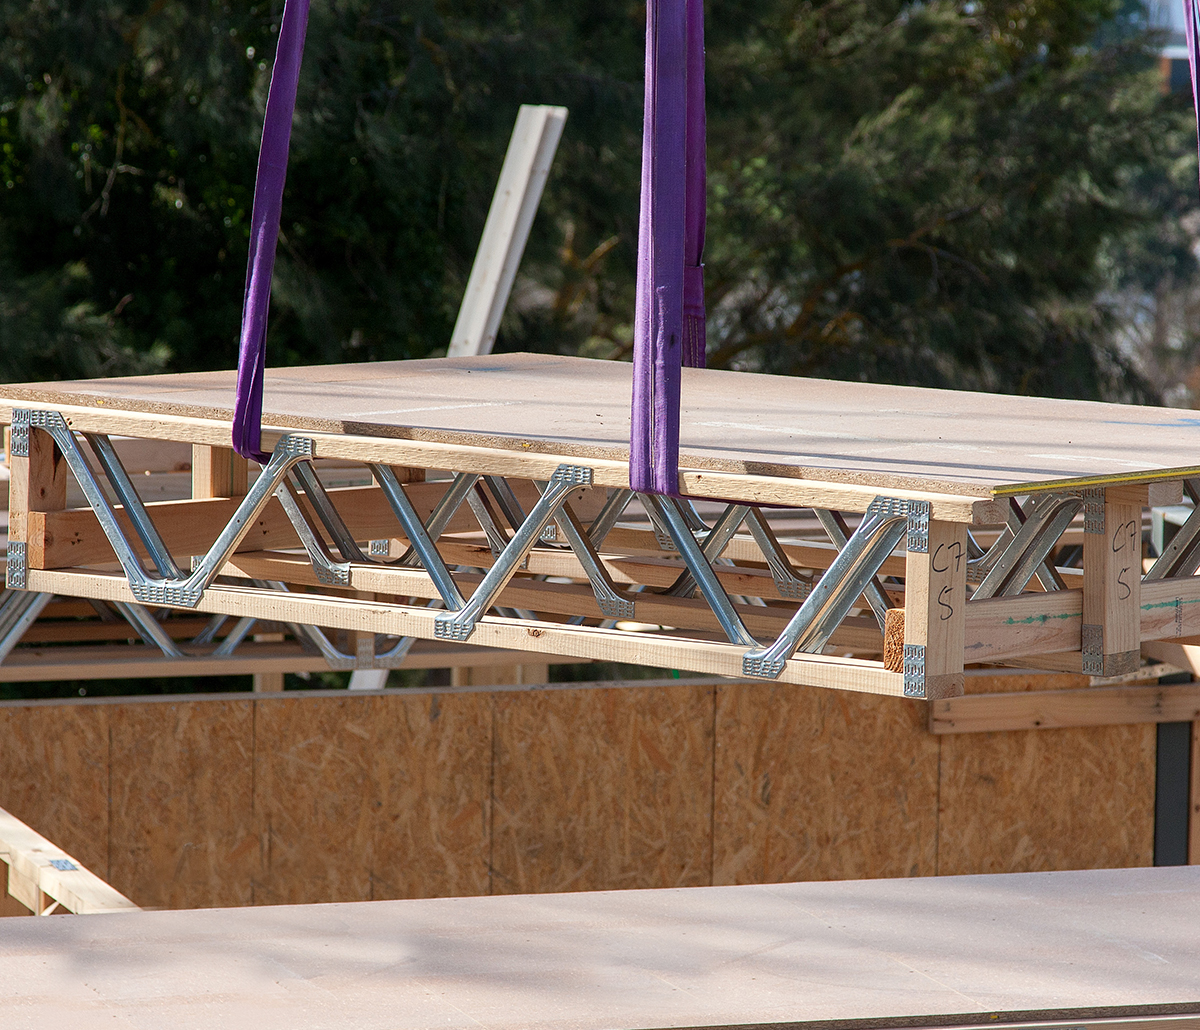 MiTek Floor Cassettes Engineered Systems Products - Wooden floor cassettes being hoisted into construction site